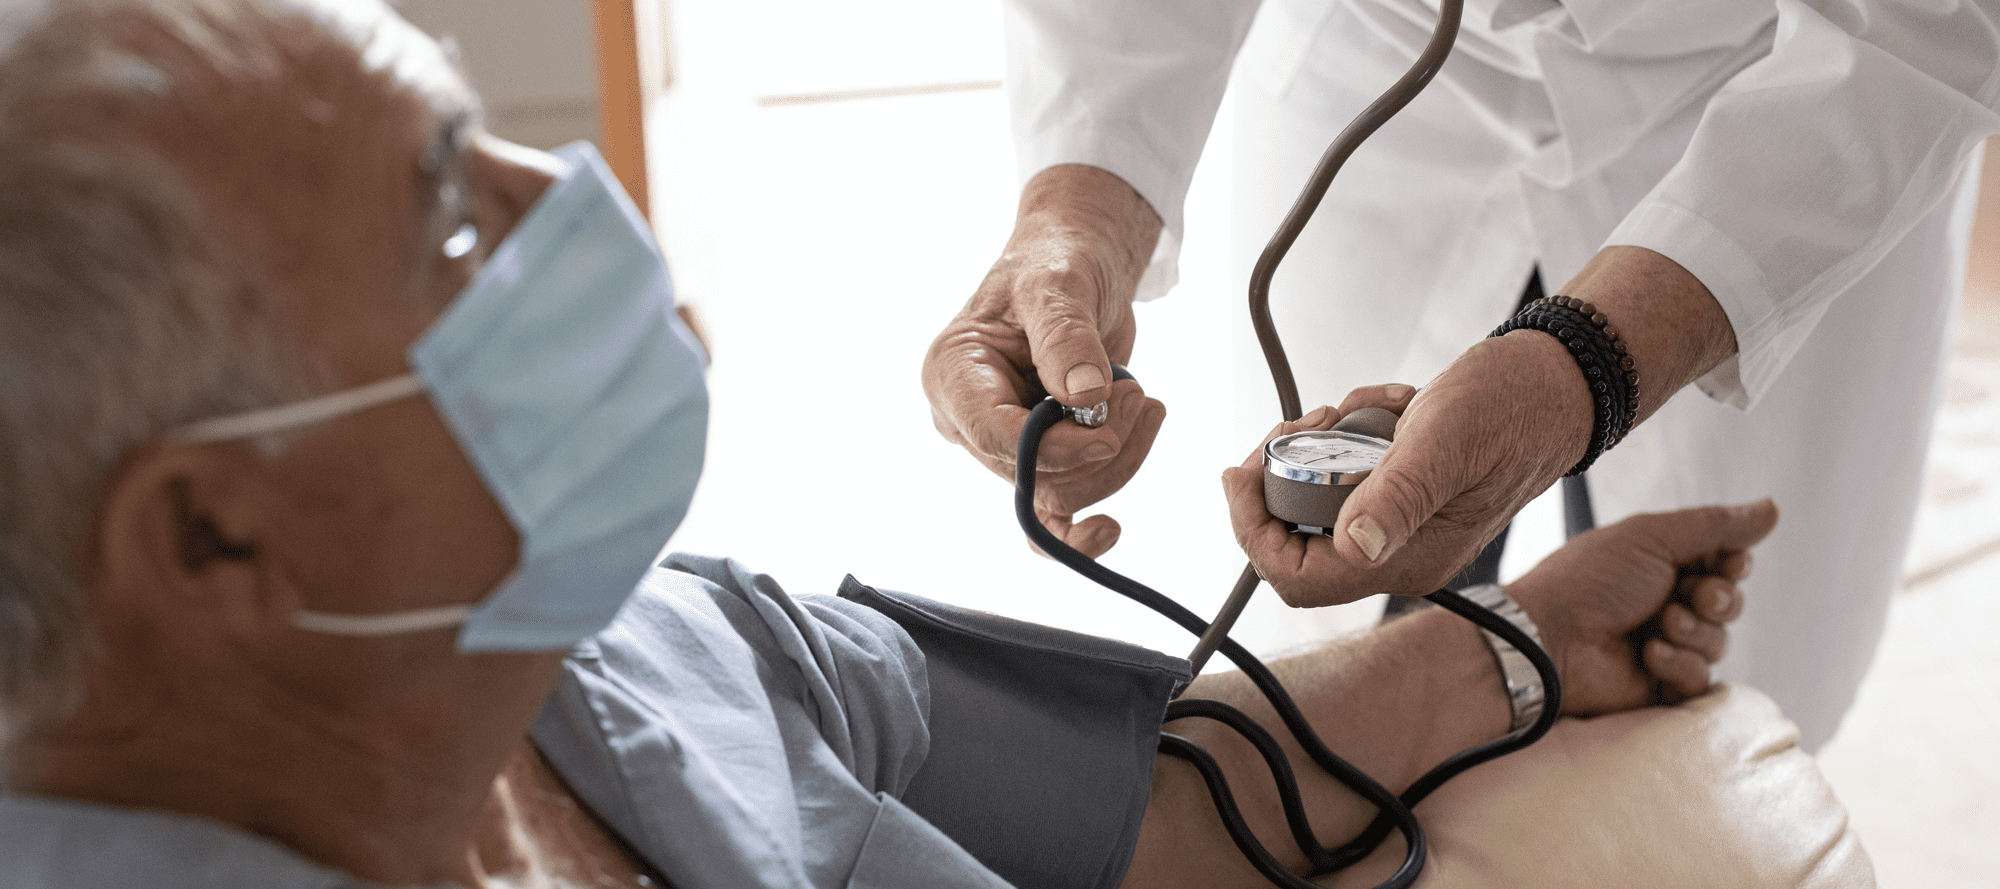 Physician taking masked patient's blood pressure